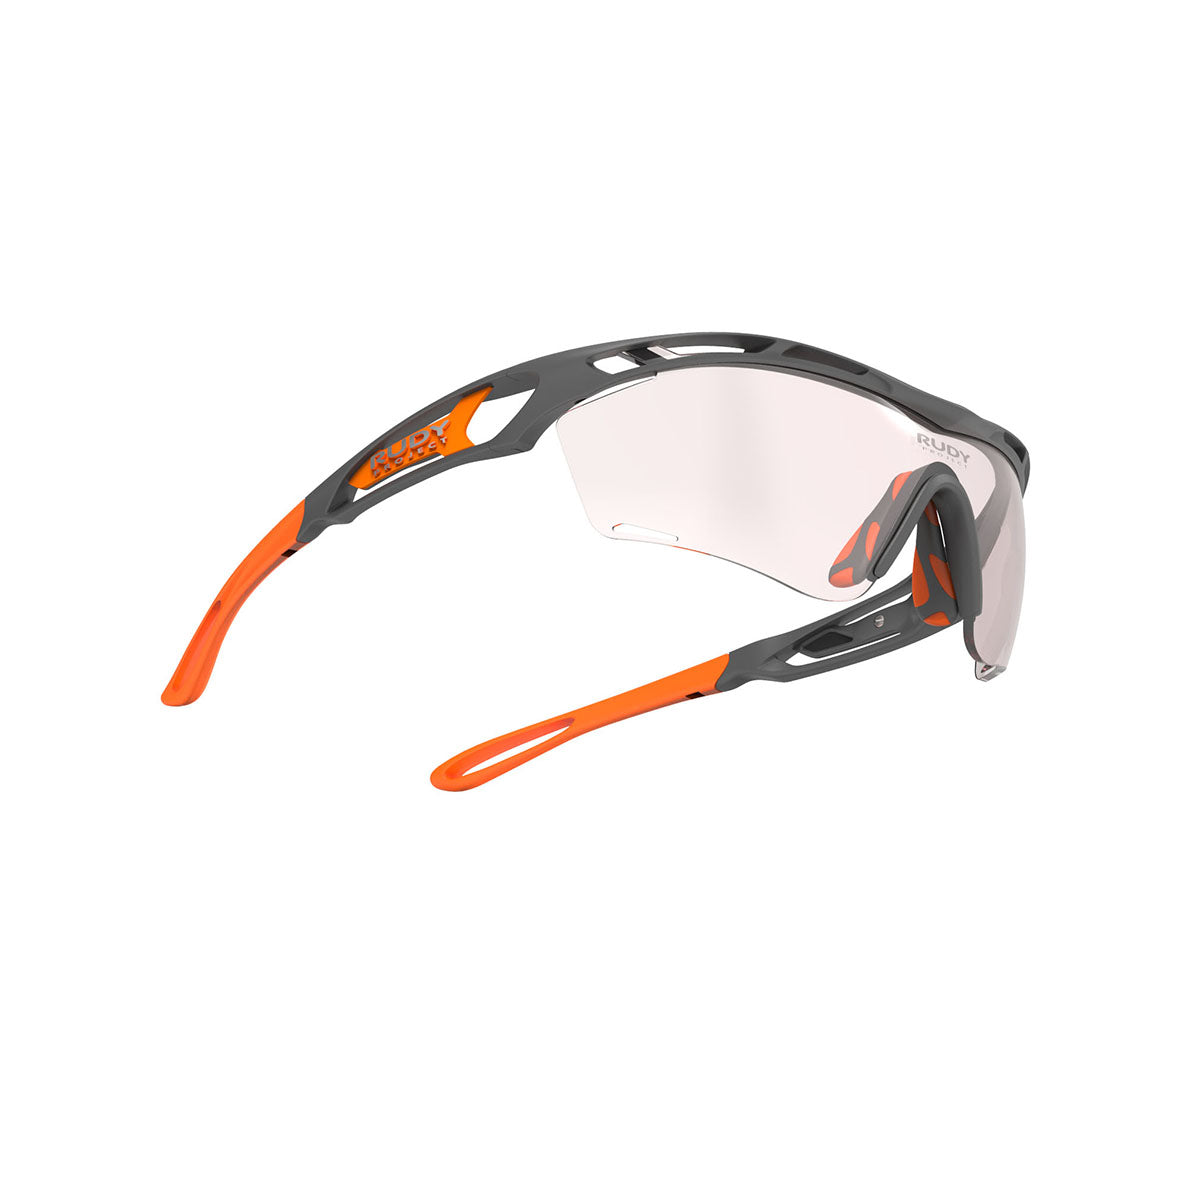 Rudy Project - Tralyx Golf - frame color: Pyombo Matte - lens color: IMPACTX-2 PHOTOCHROMIC PHOTOCHROMIC CLEAR TO RED LENSES - photo angle: Bottom Front Angle Variant Hover Image